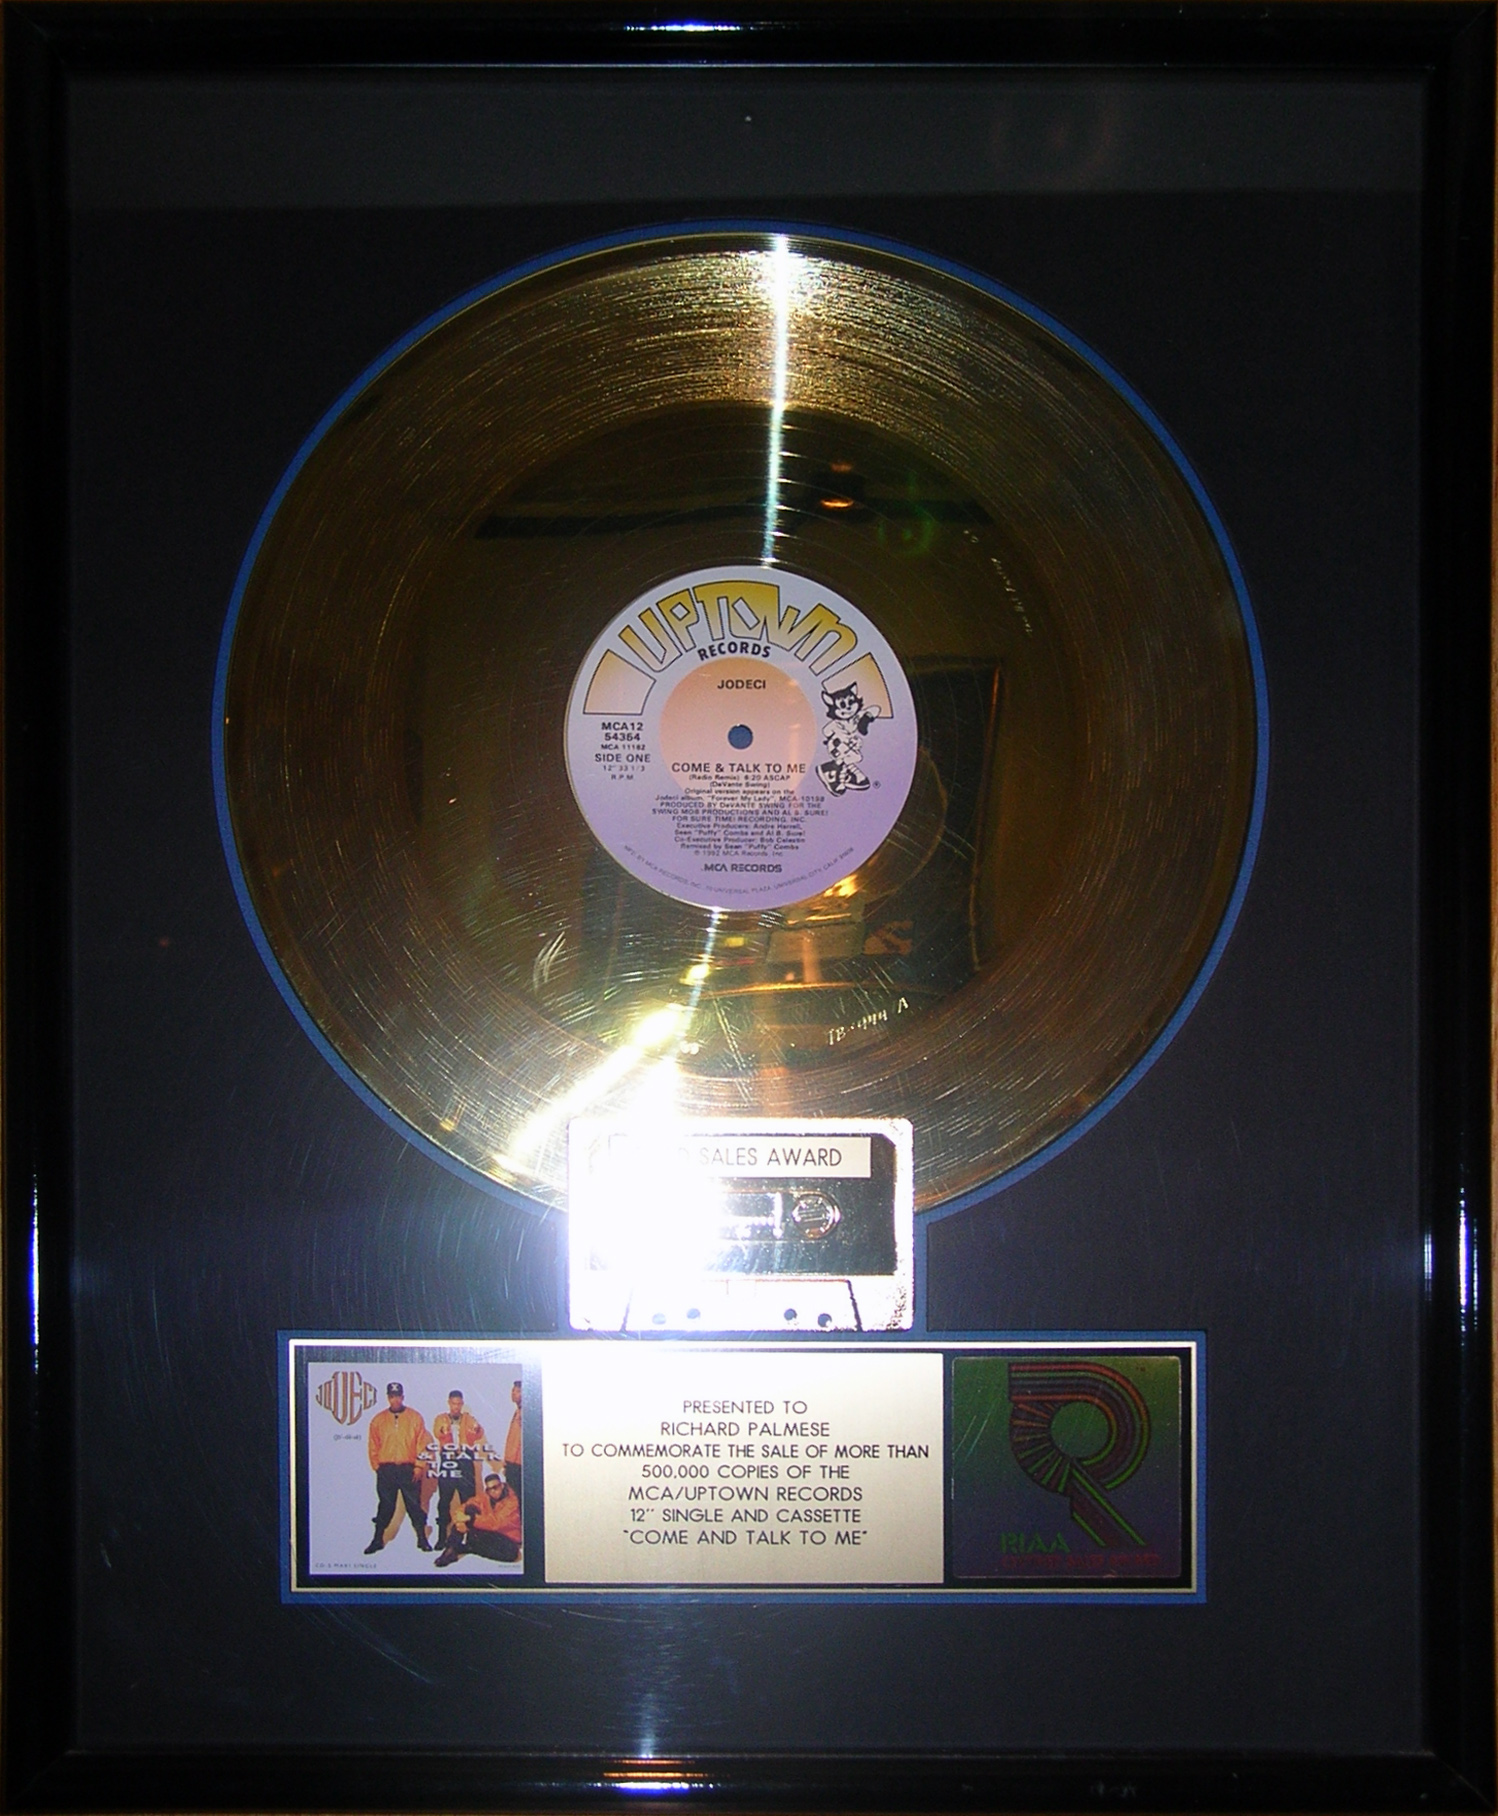 RIAA certification